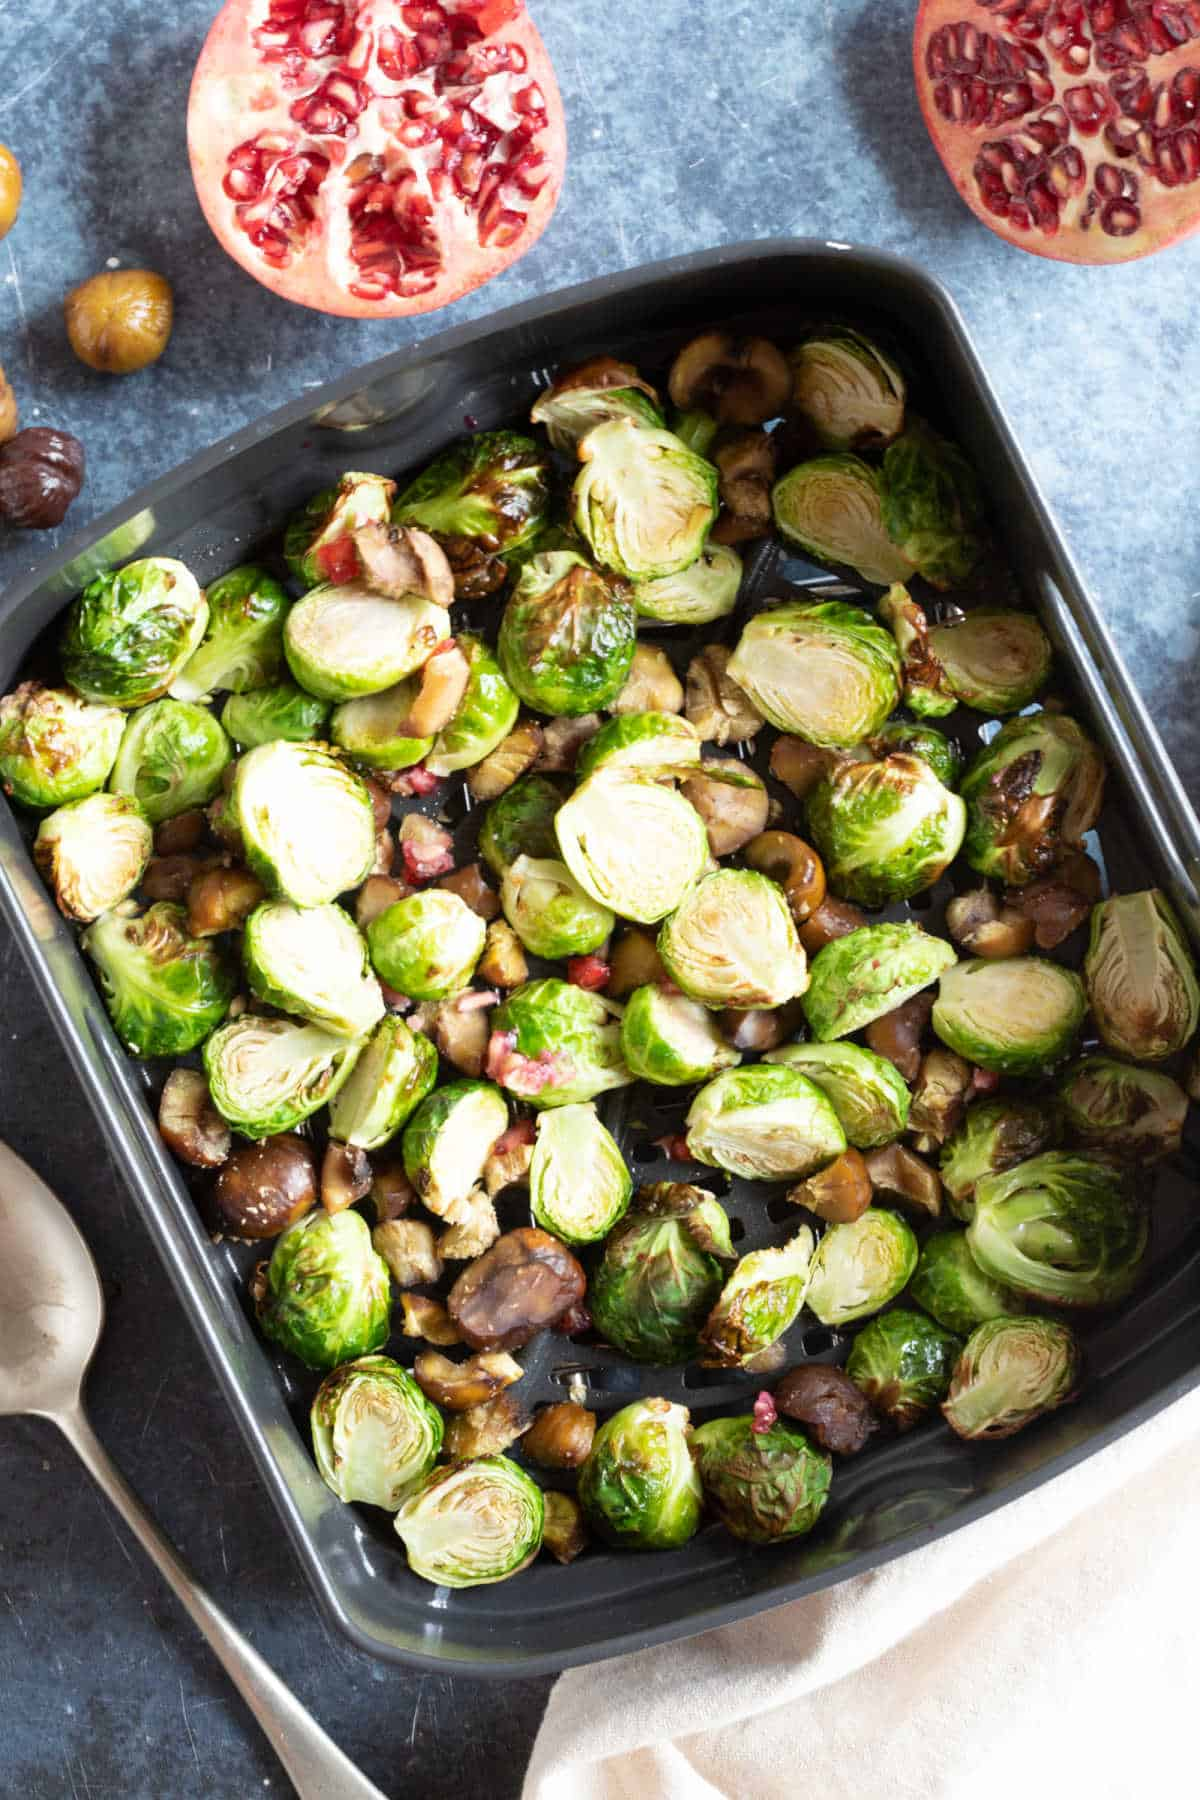 Brussels sprouts in the air fryer basket.